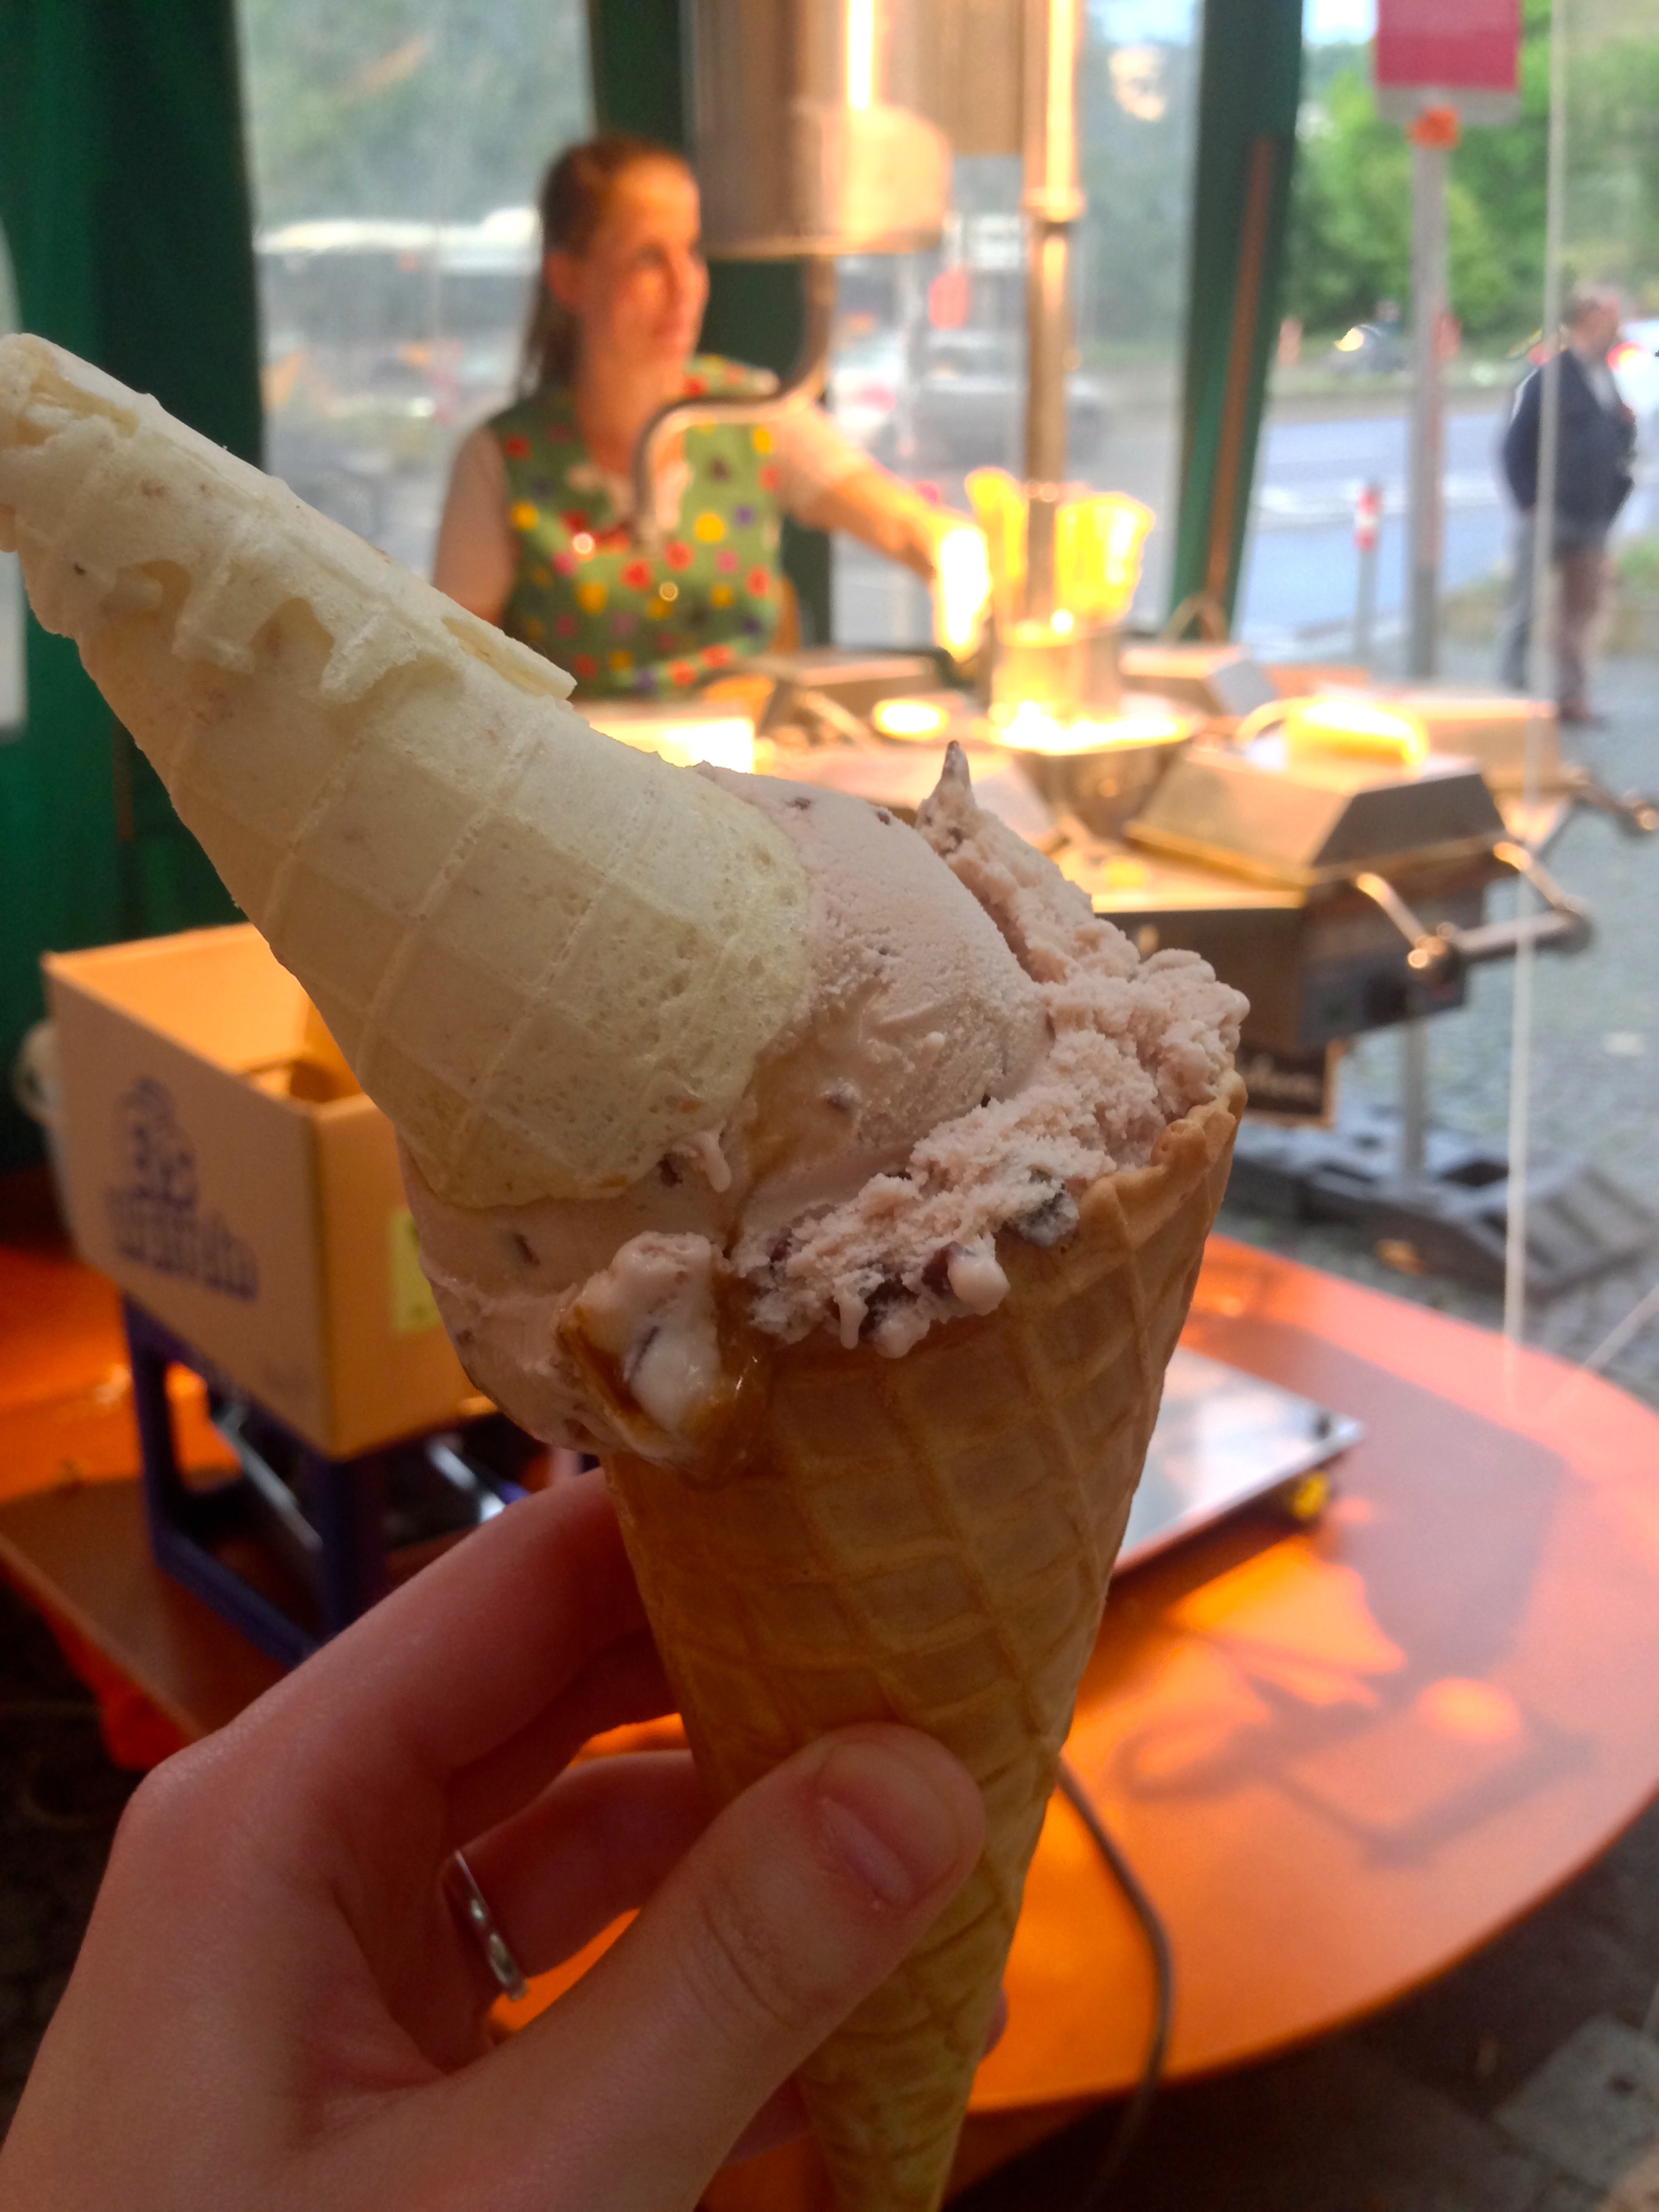 Caramel ice cream cone with the cone maker in the background